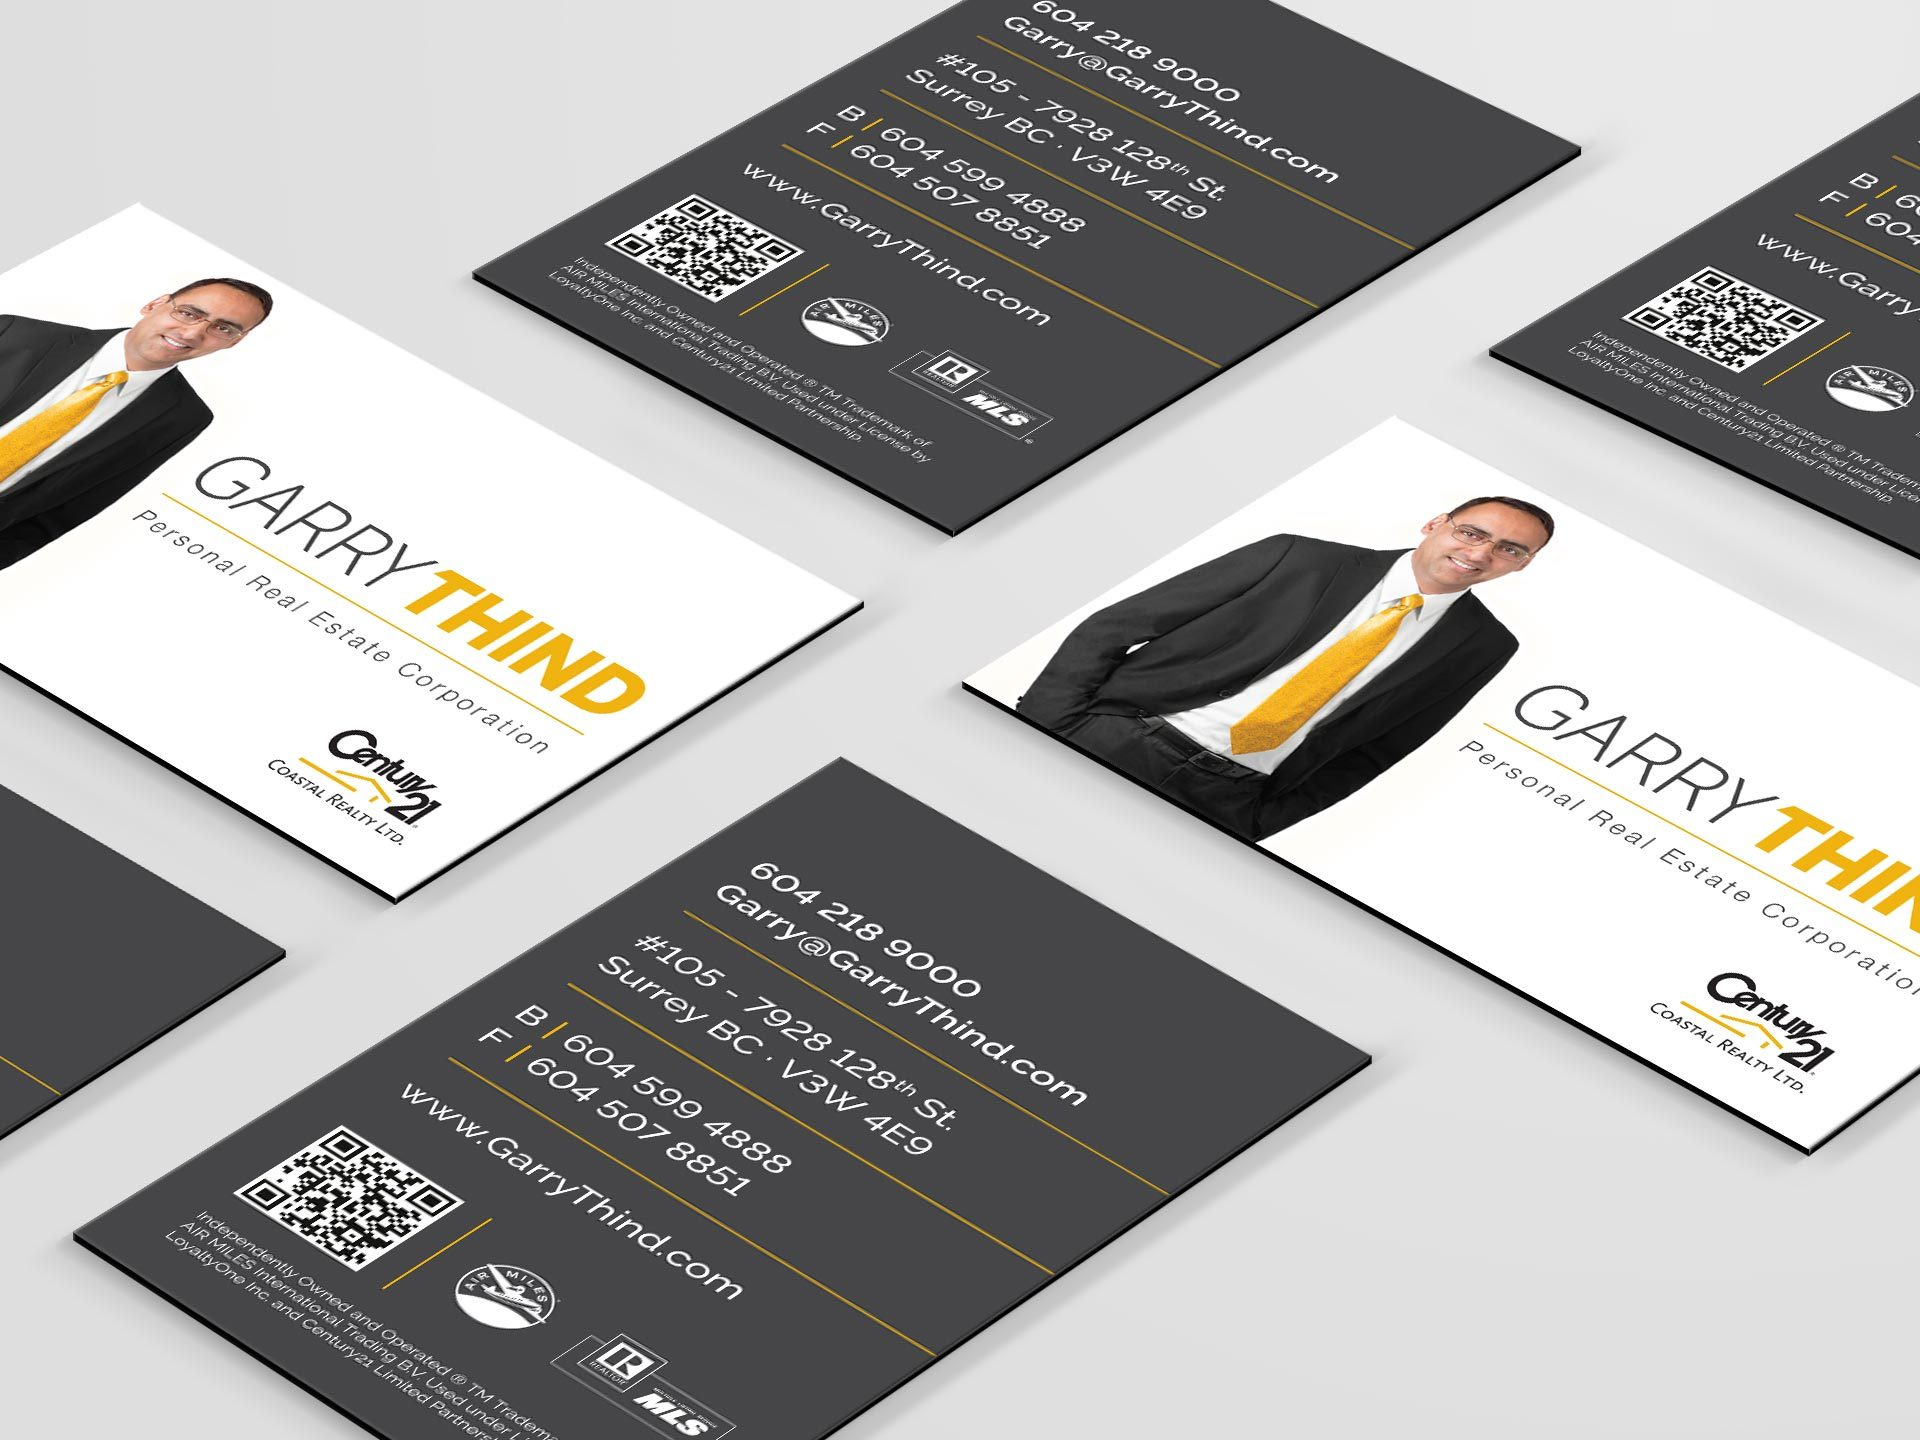 Y5 Creative Case Studies 2017 Business Cards Garry Thind Realtor